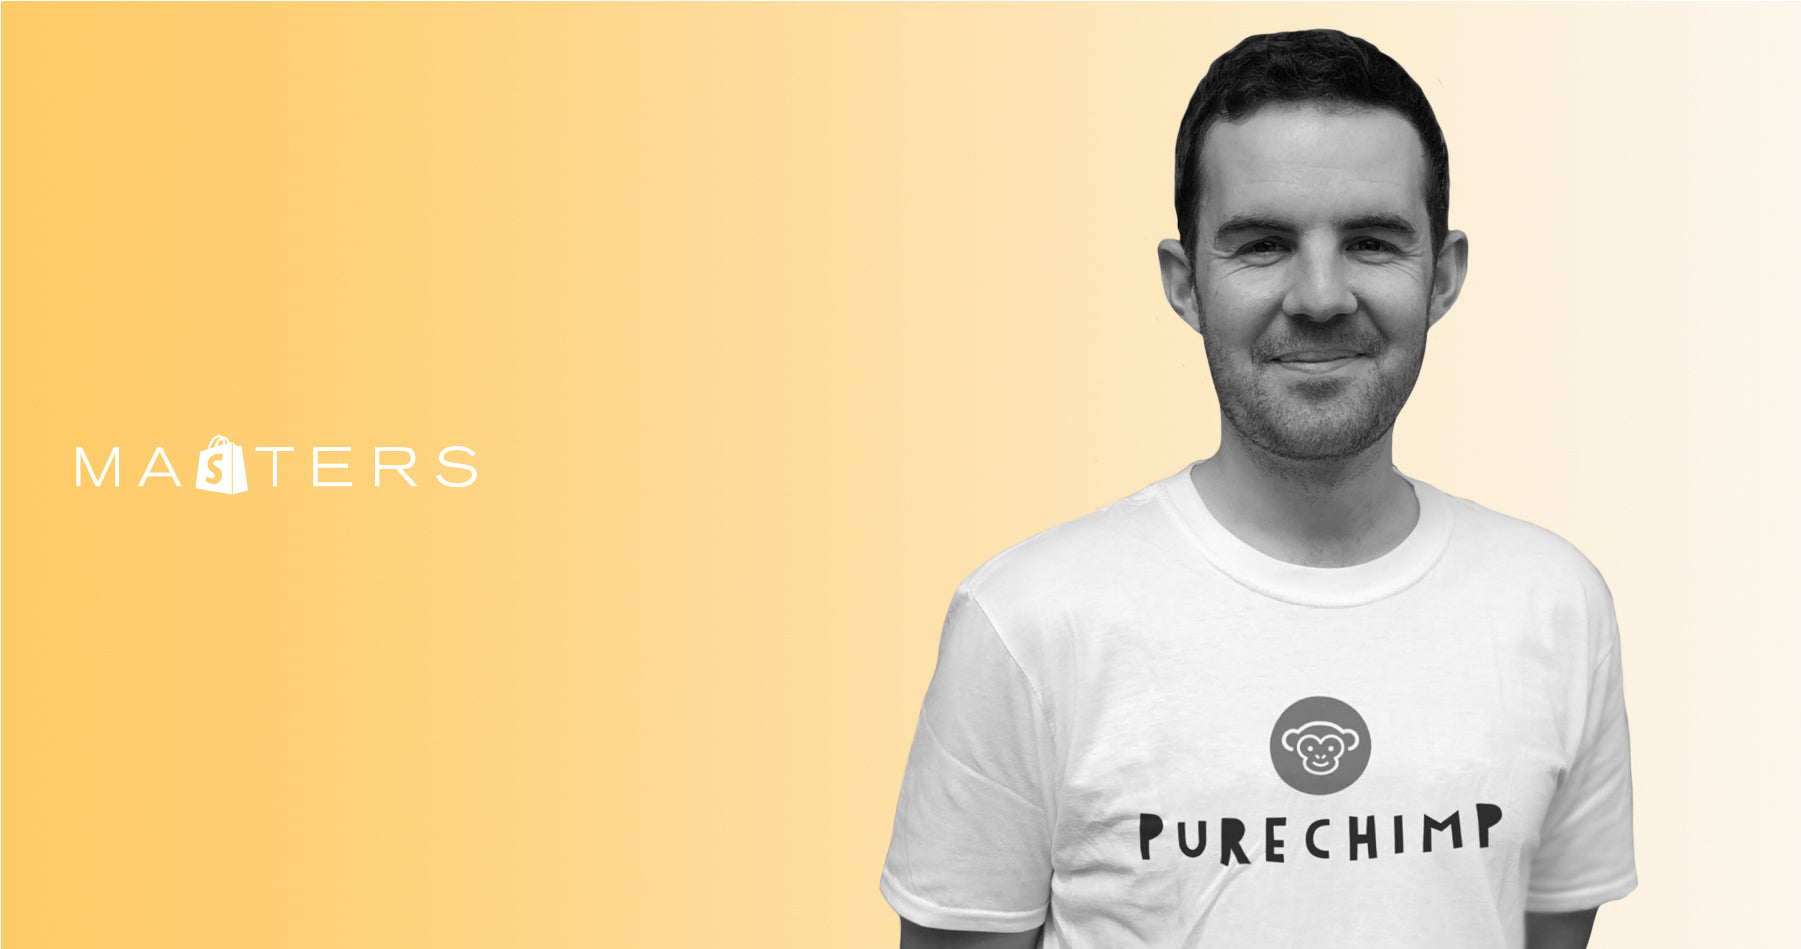 Shopify Masters: Pure Chimp